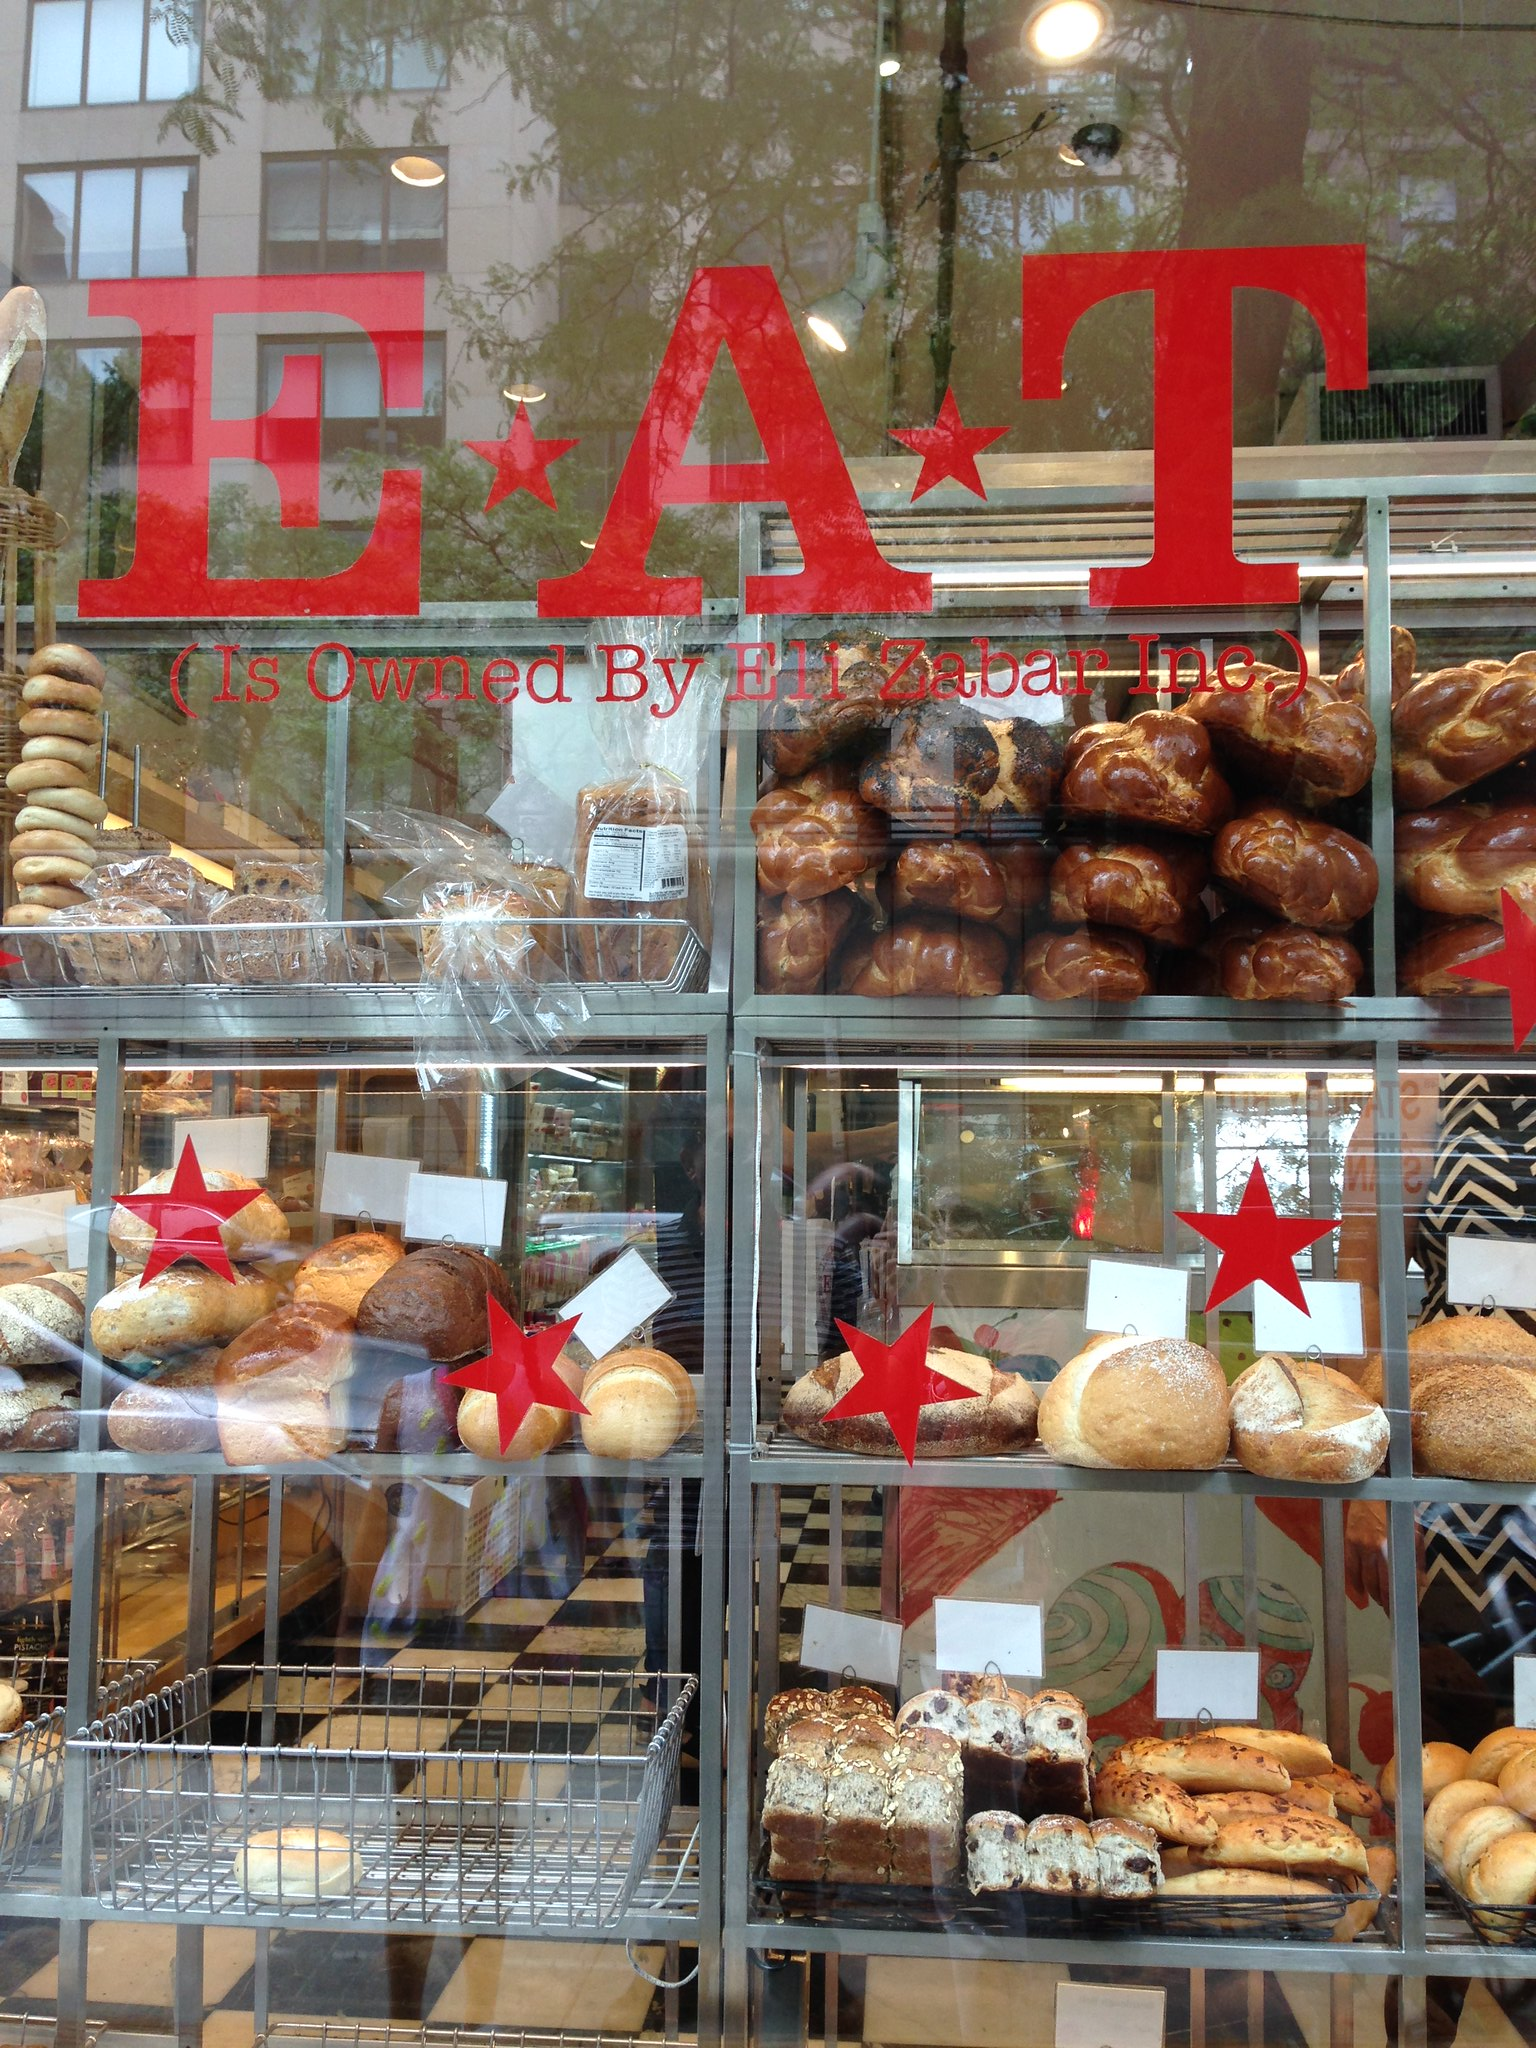 EAT, Upper East Side, NYC. Nueva York